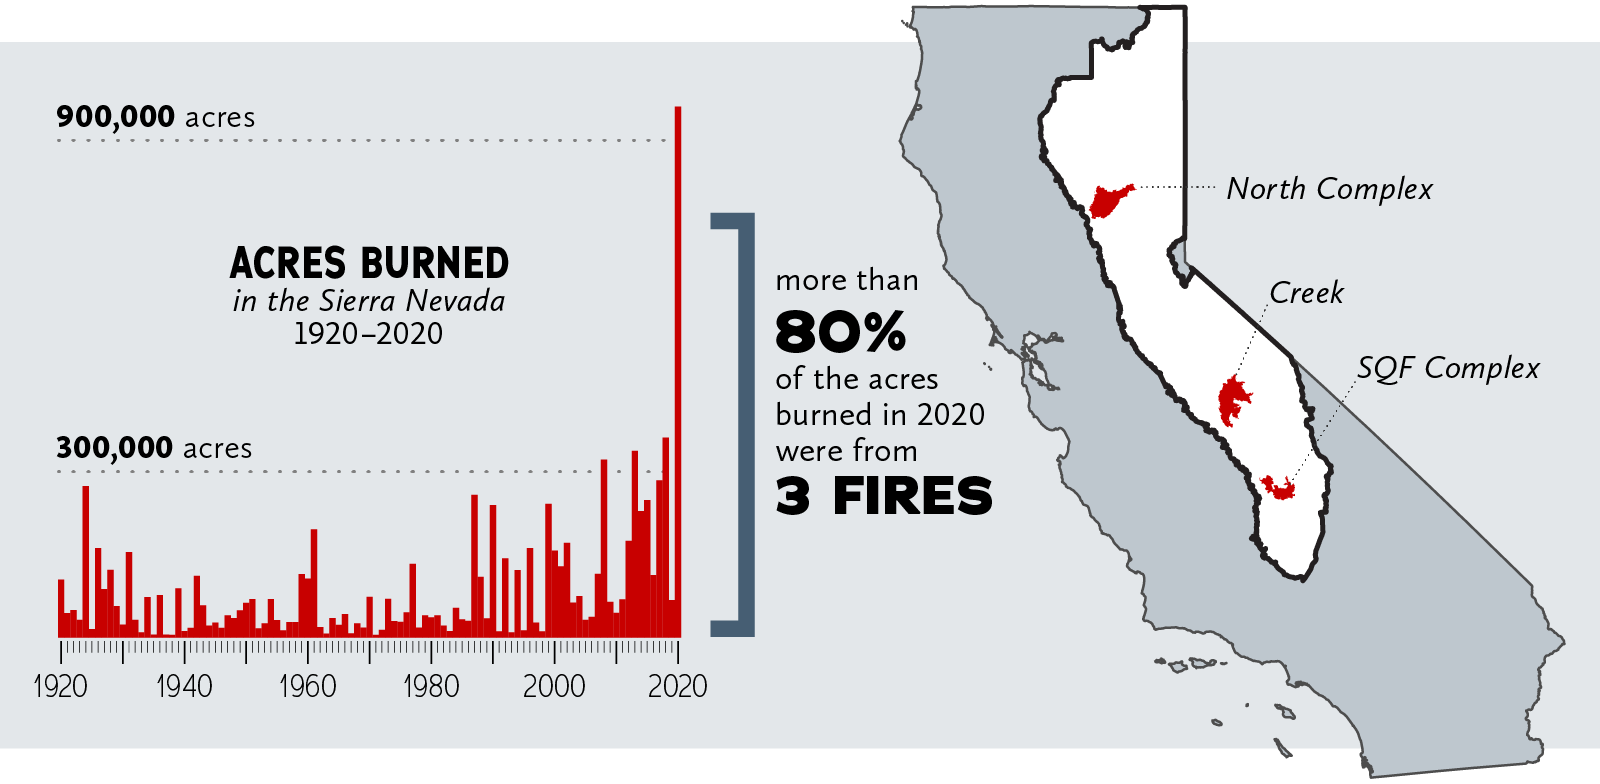 Graph showing acres burned in the sierra nevada from 1920 to 2020. All years hover below or slightly above 300,000 acres. 2020 surpasses 900,000 acres. More than 80% of the acres burned in 2020 were from 3 fires: North Complex, Creek, and SQF Complex fires, all of which are large enough to be seen on a small map of california.